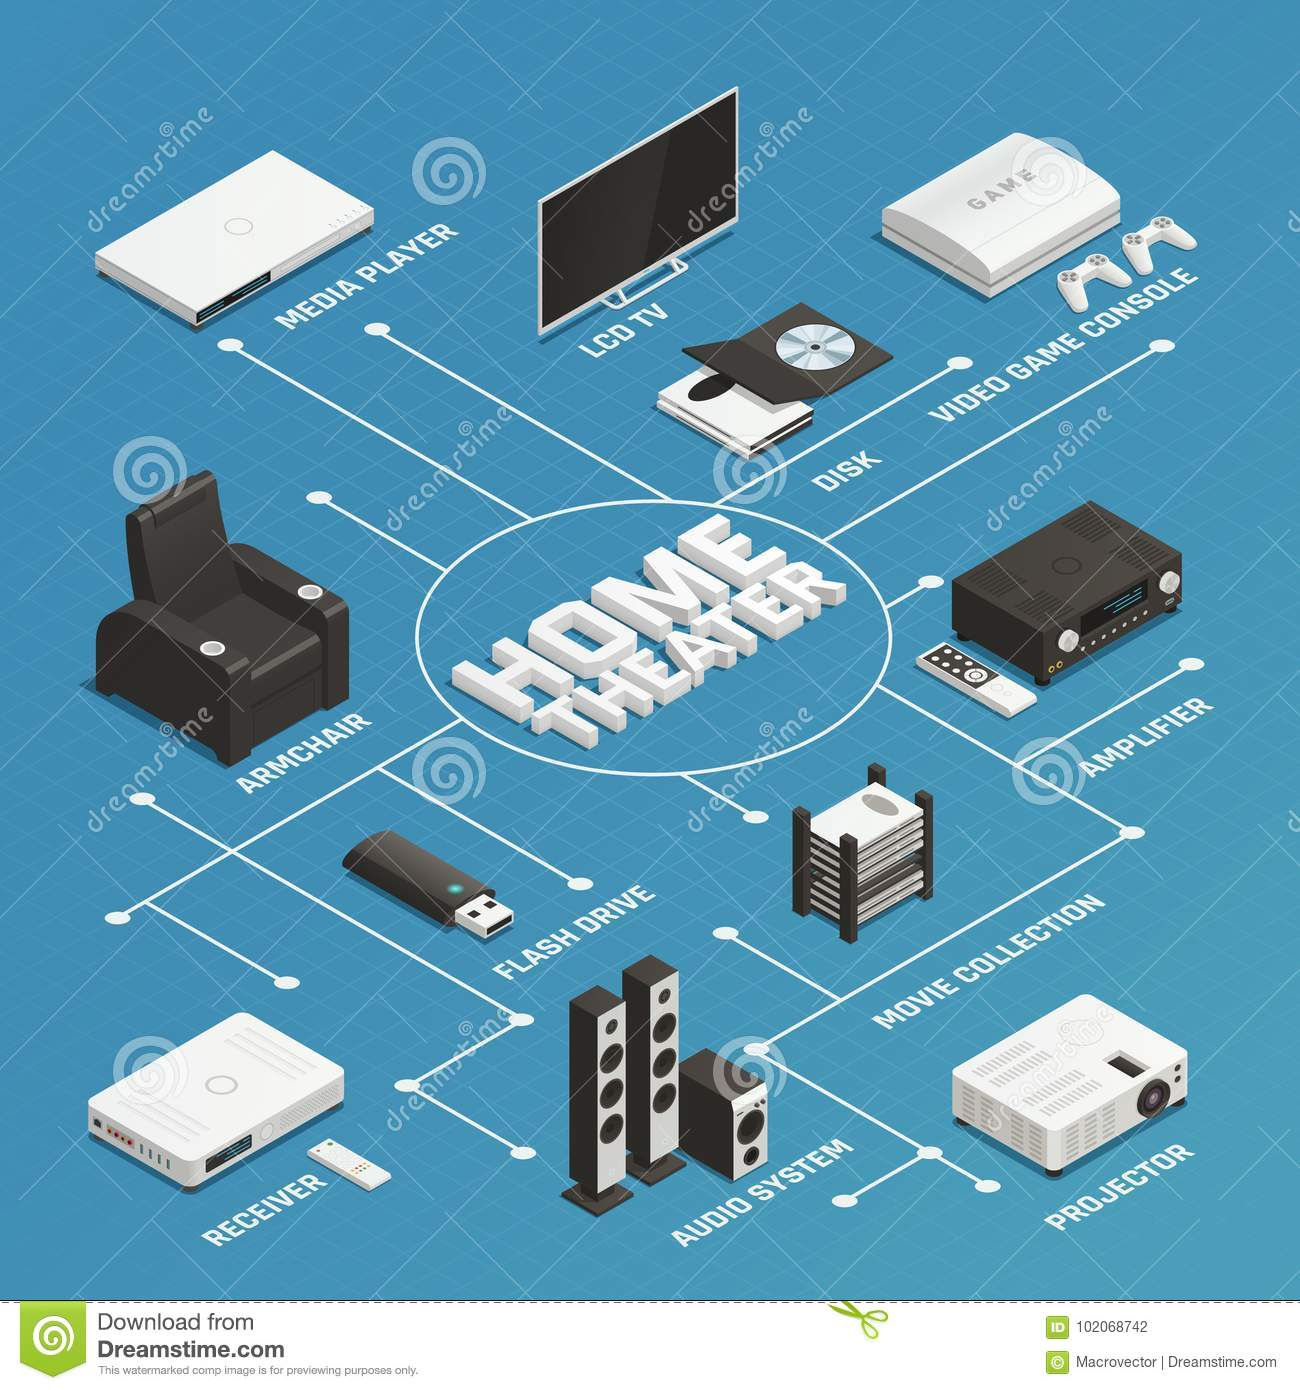 Home Theater Isometric Flowchart Stock Vector - Illustration of ...